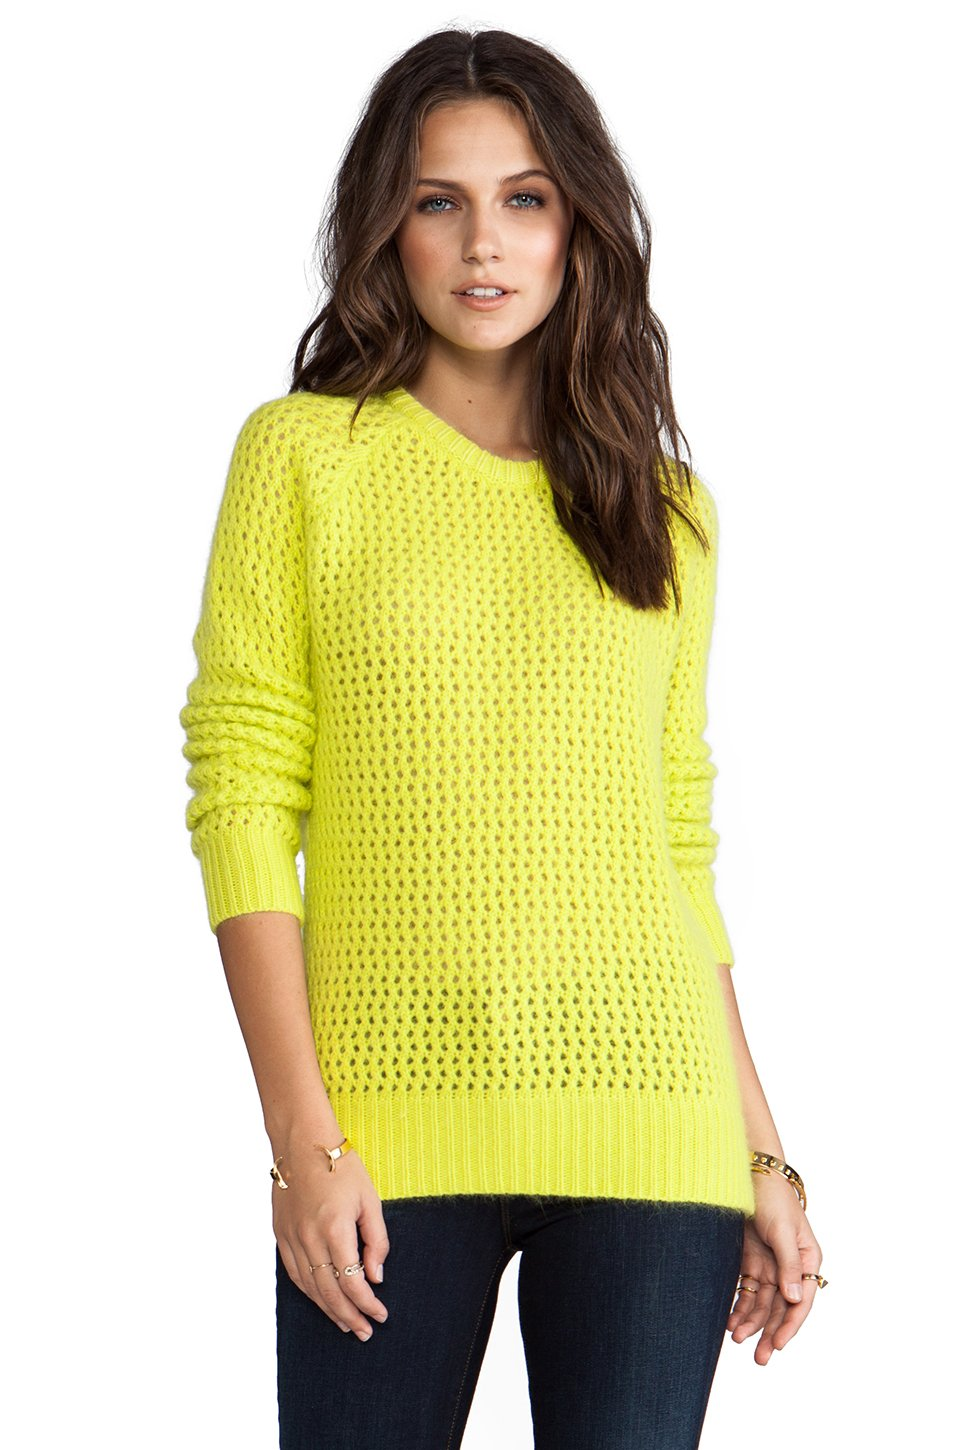 Shae Long Sleeve Open Stitch Fuzzy Sweater in Yellow in Yellow | Lyst